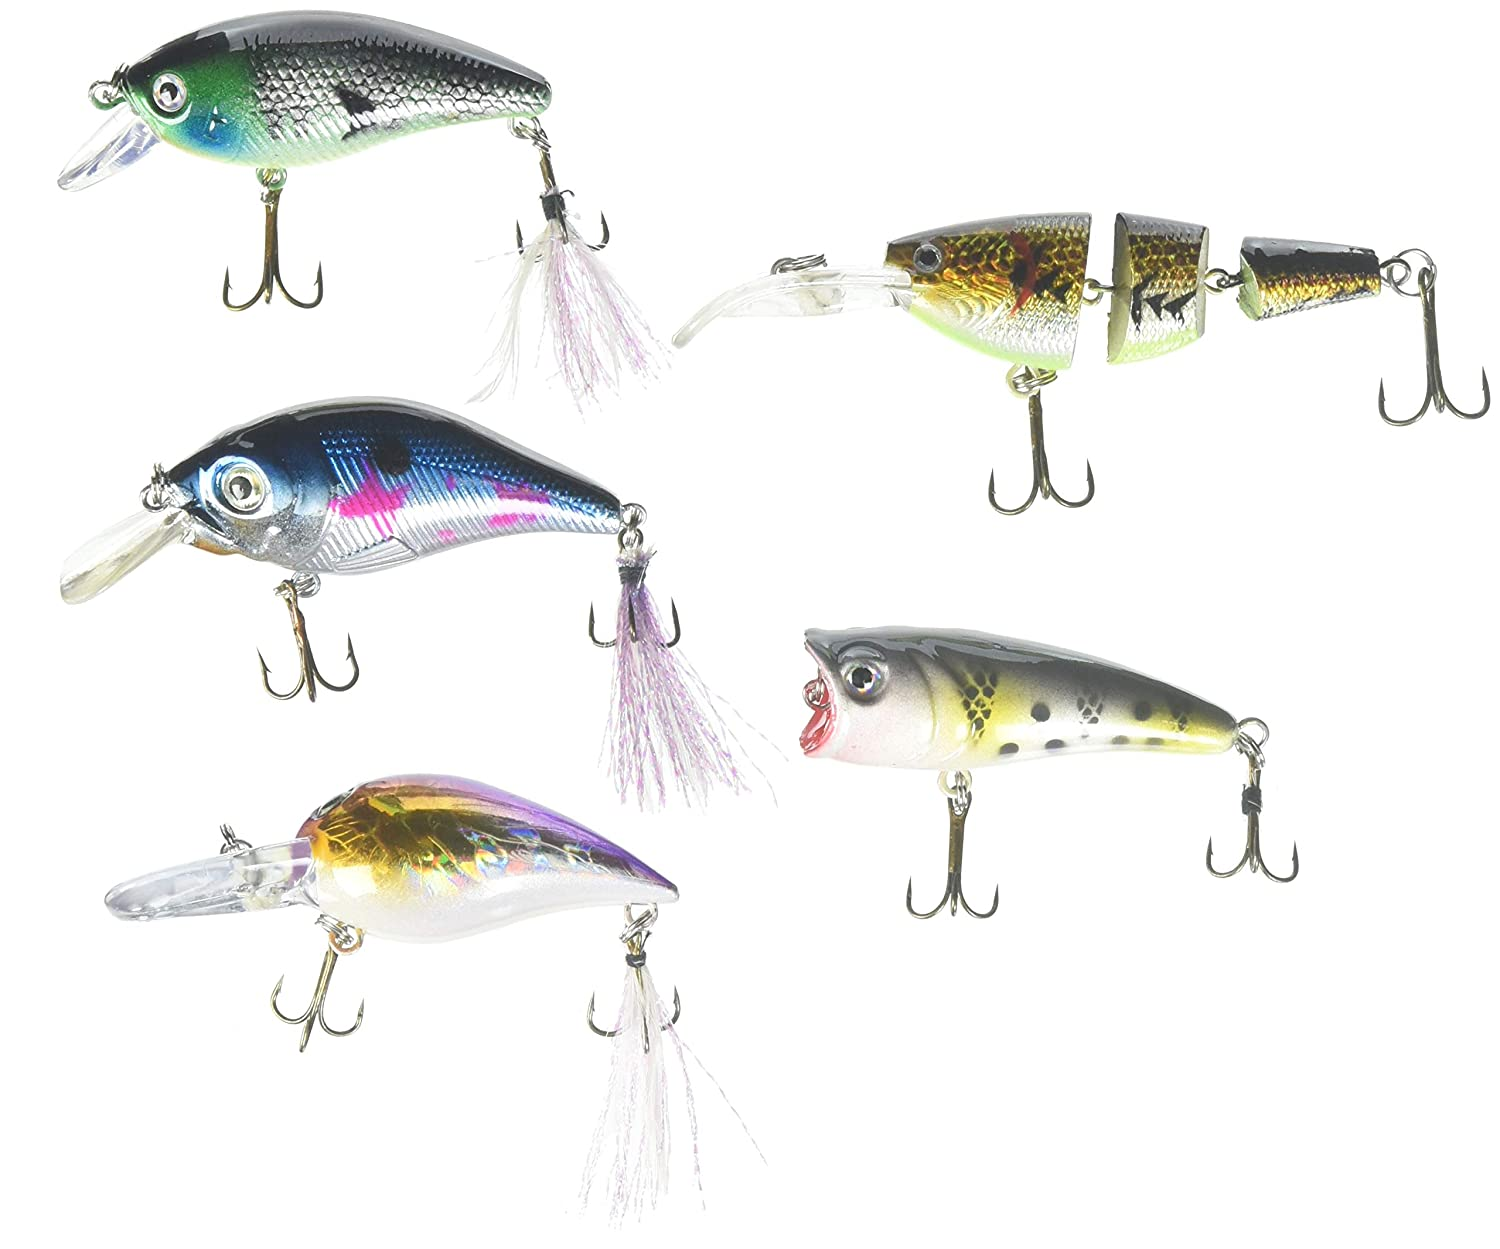 Akuna Lot of 5 Mixed Shallow Diving Fishing Lures for Bass & Trout